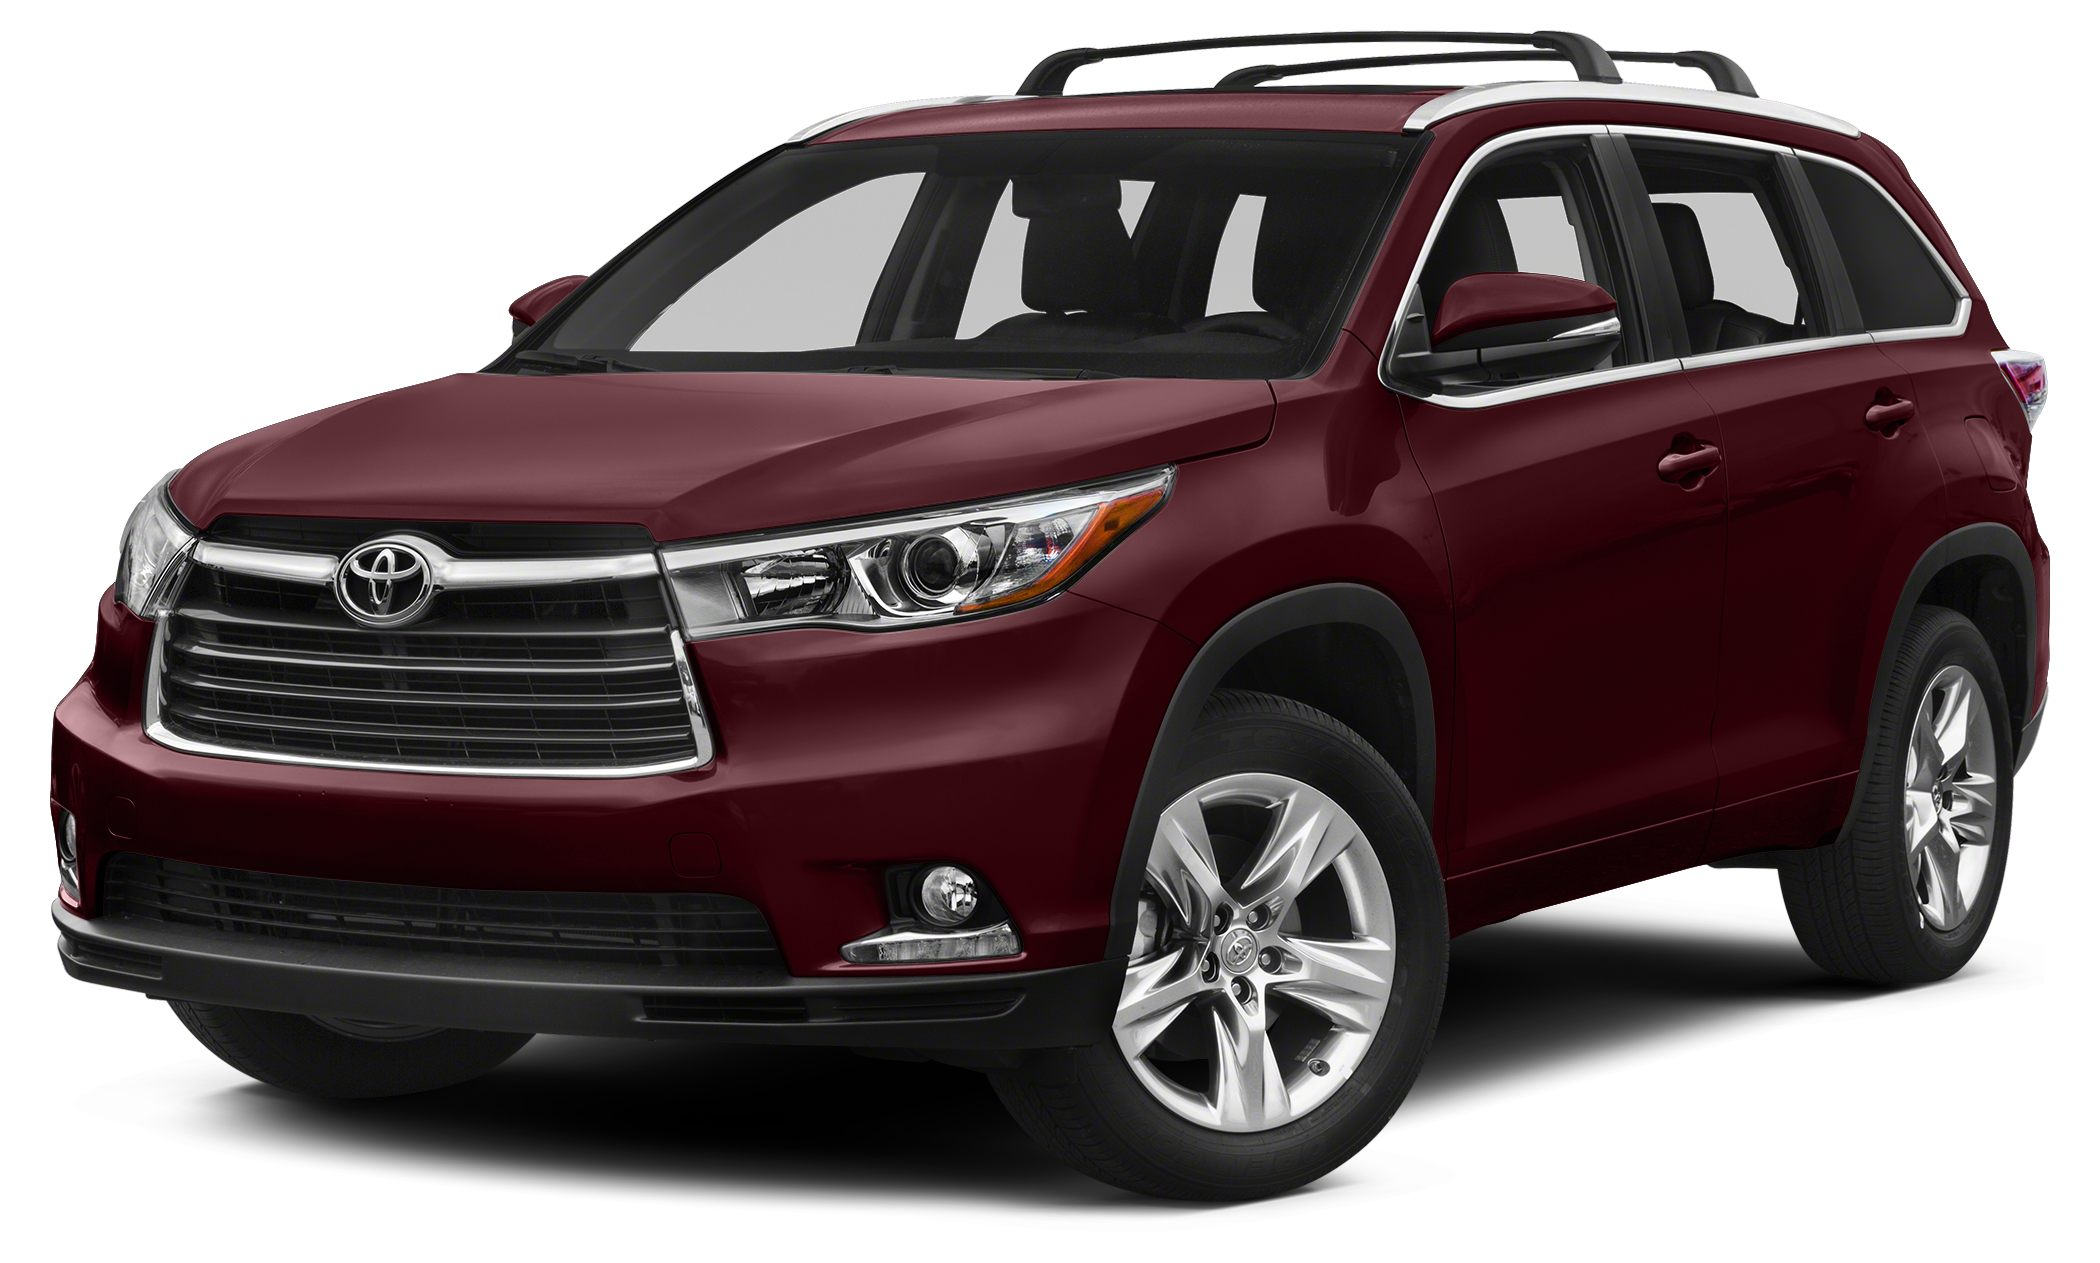 2014 Toyota Highlander XLE New Price CARFAX One-Owner Clean CARFAX Ooh La La Rouge Mica 2014 To